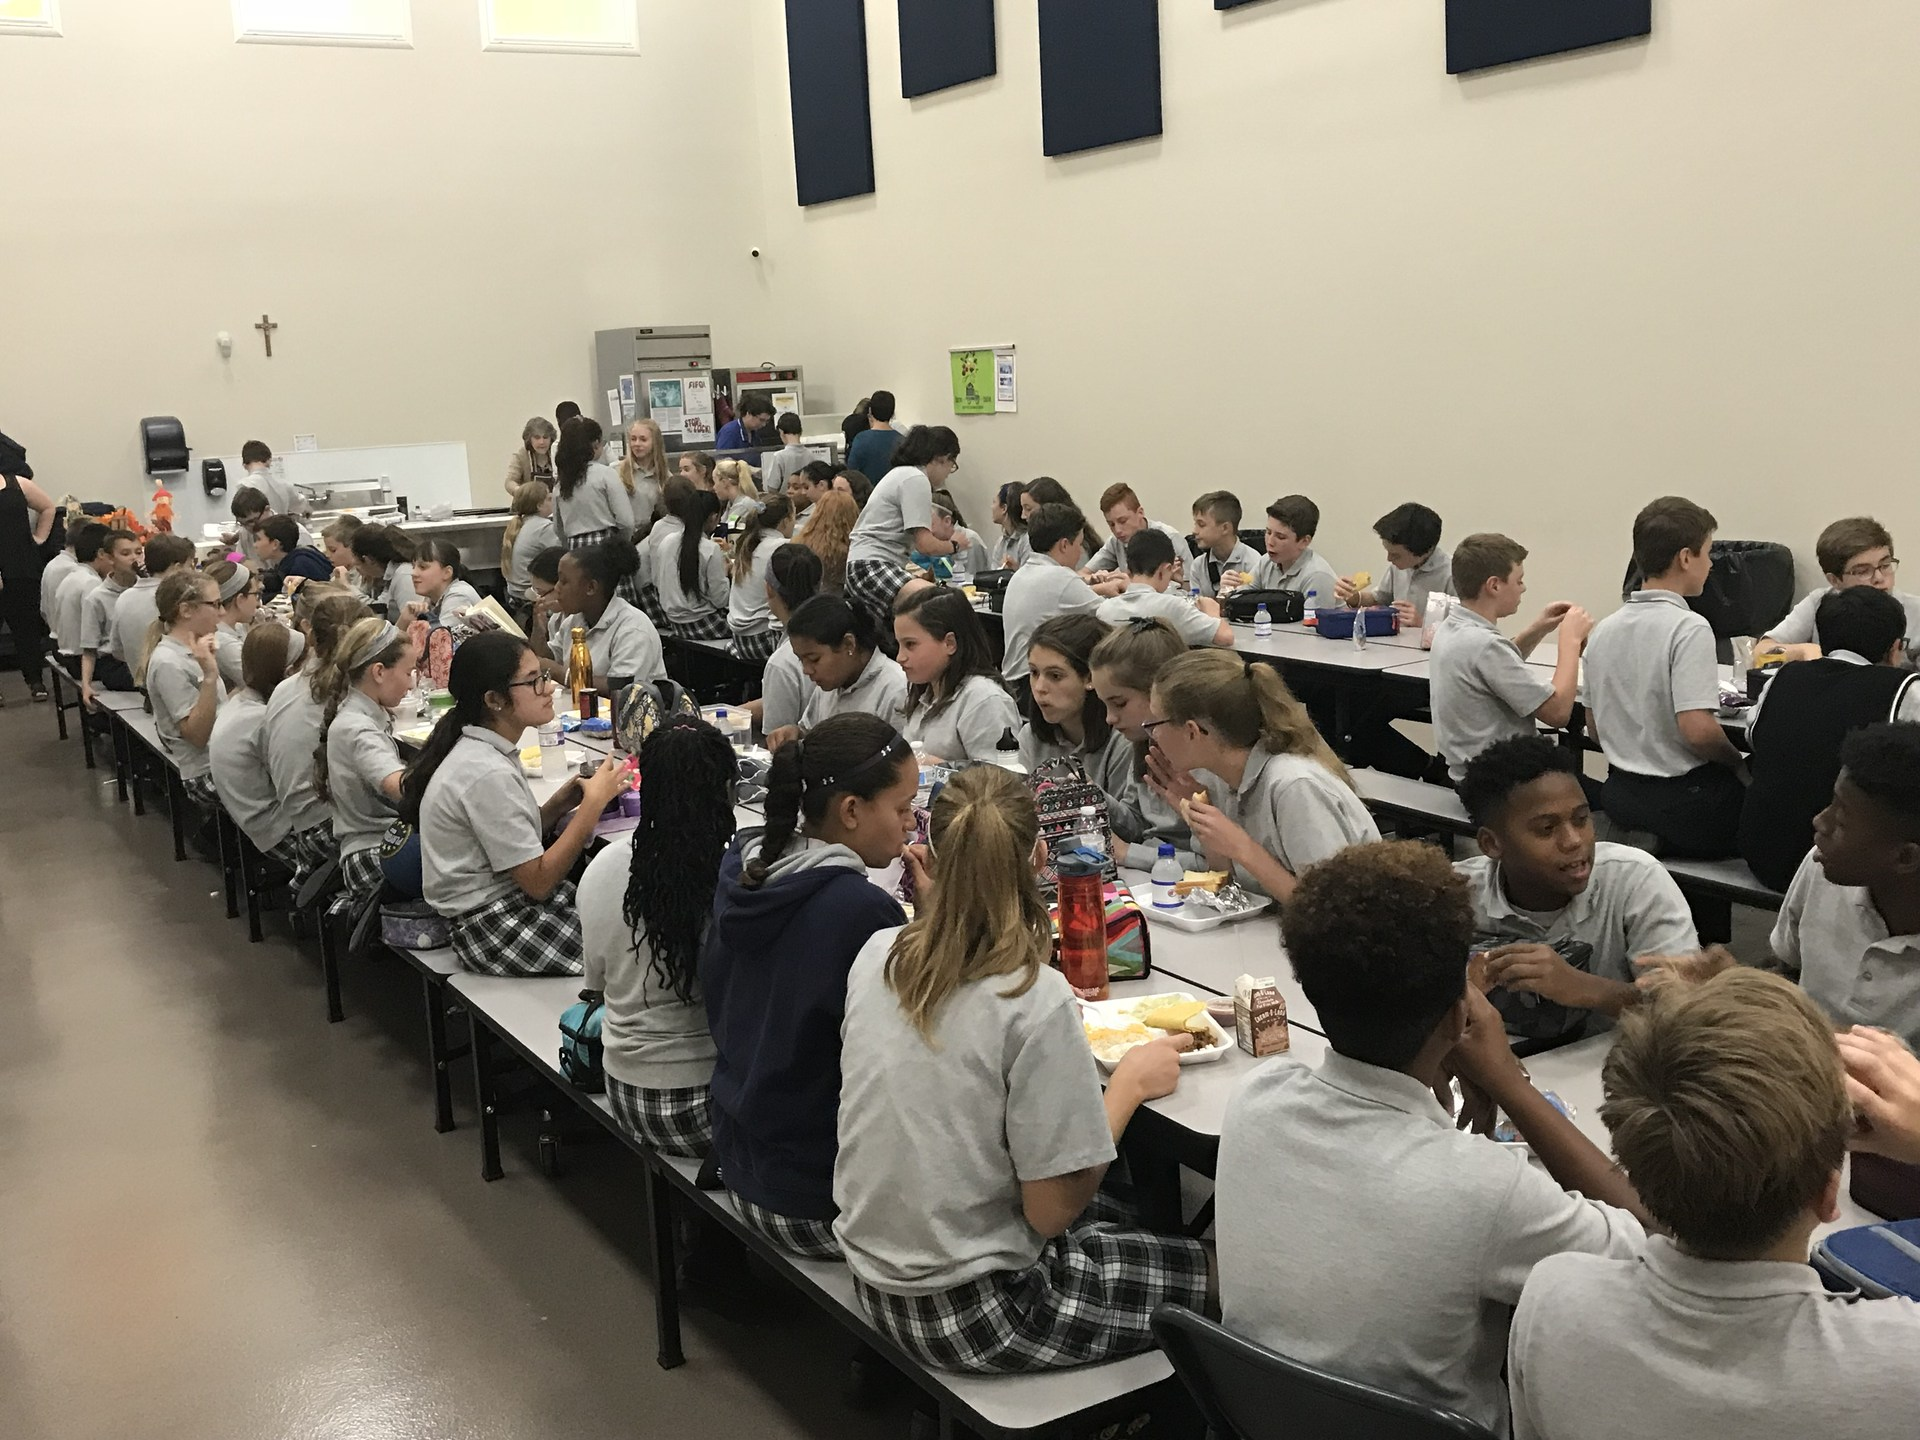 Students eating lunch in cafeteria